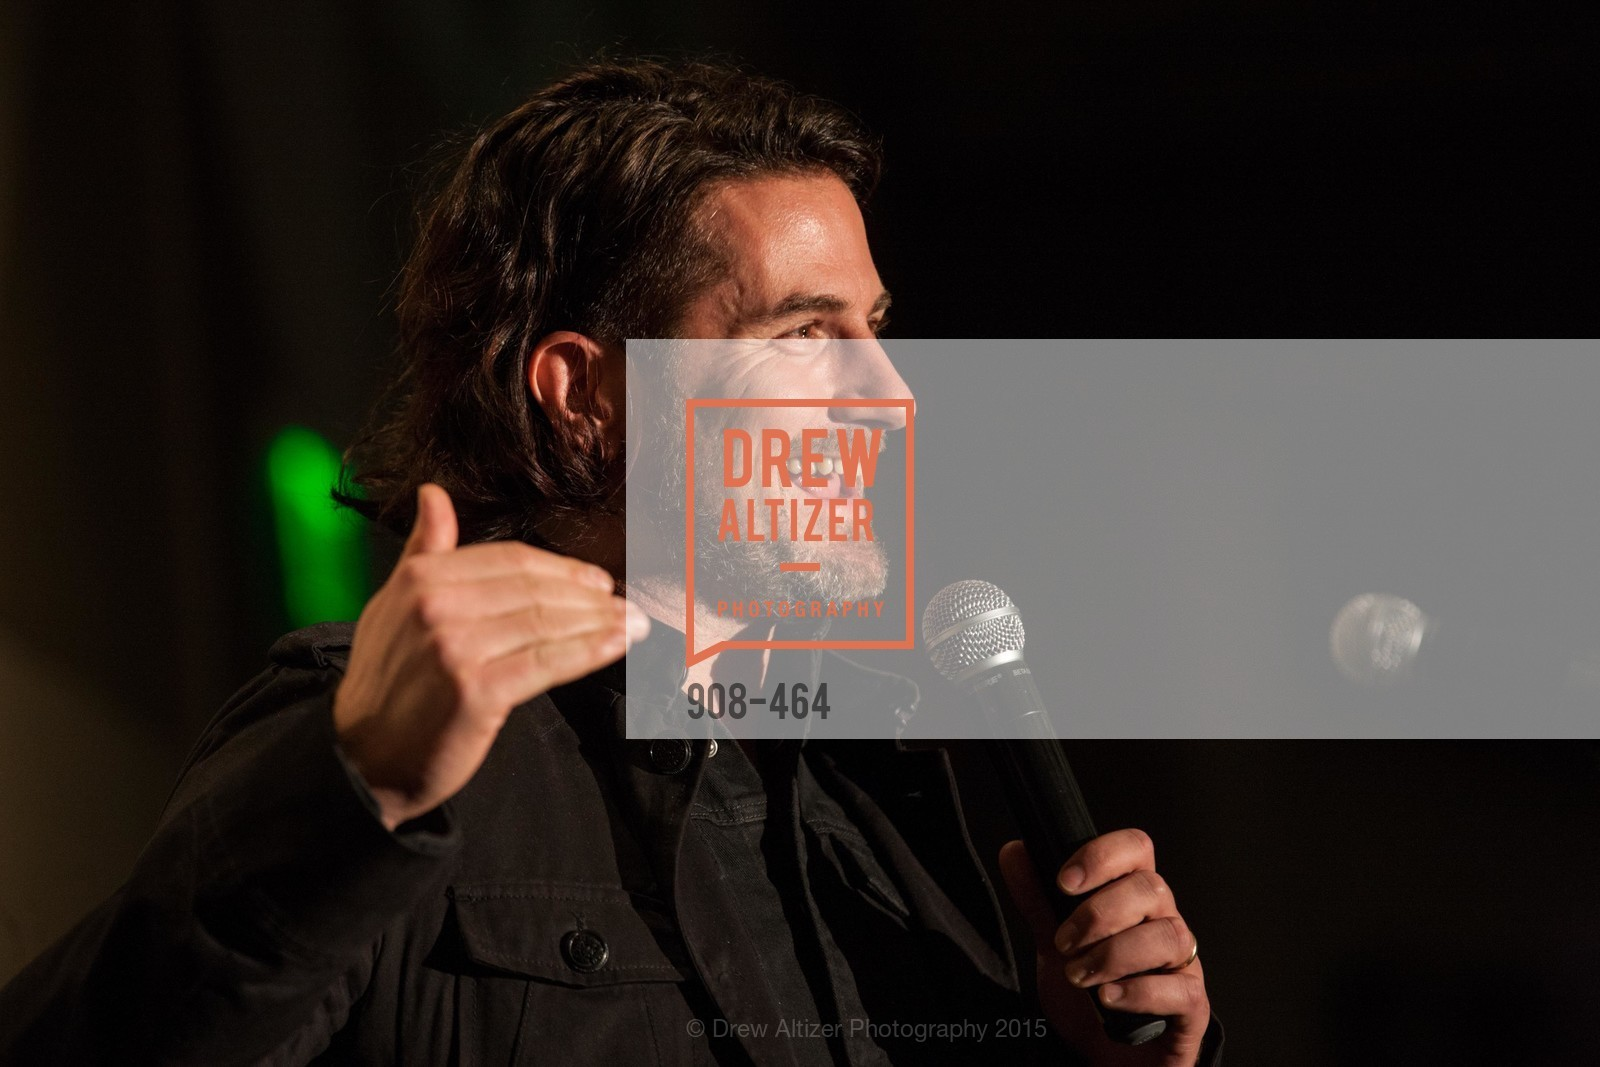 Matt Nathanson, Operation Smile Presents THE SAN FRANCISCO 2015 SMILE GALA, InterContinental Hotel, November 7th, 2015,Drew Altizer, Drew Altizer Photography, full-service agency, private events, San Francisco photographer, photographer california